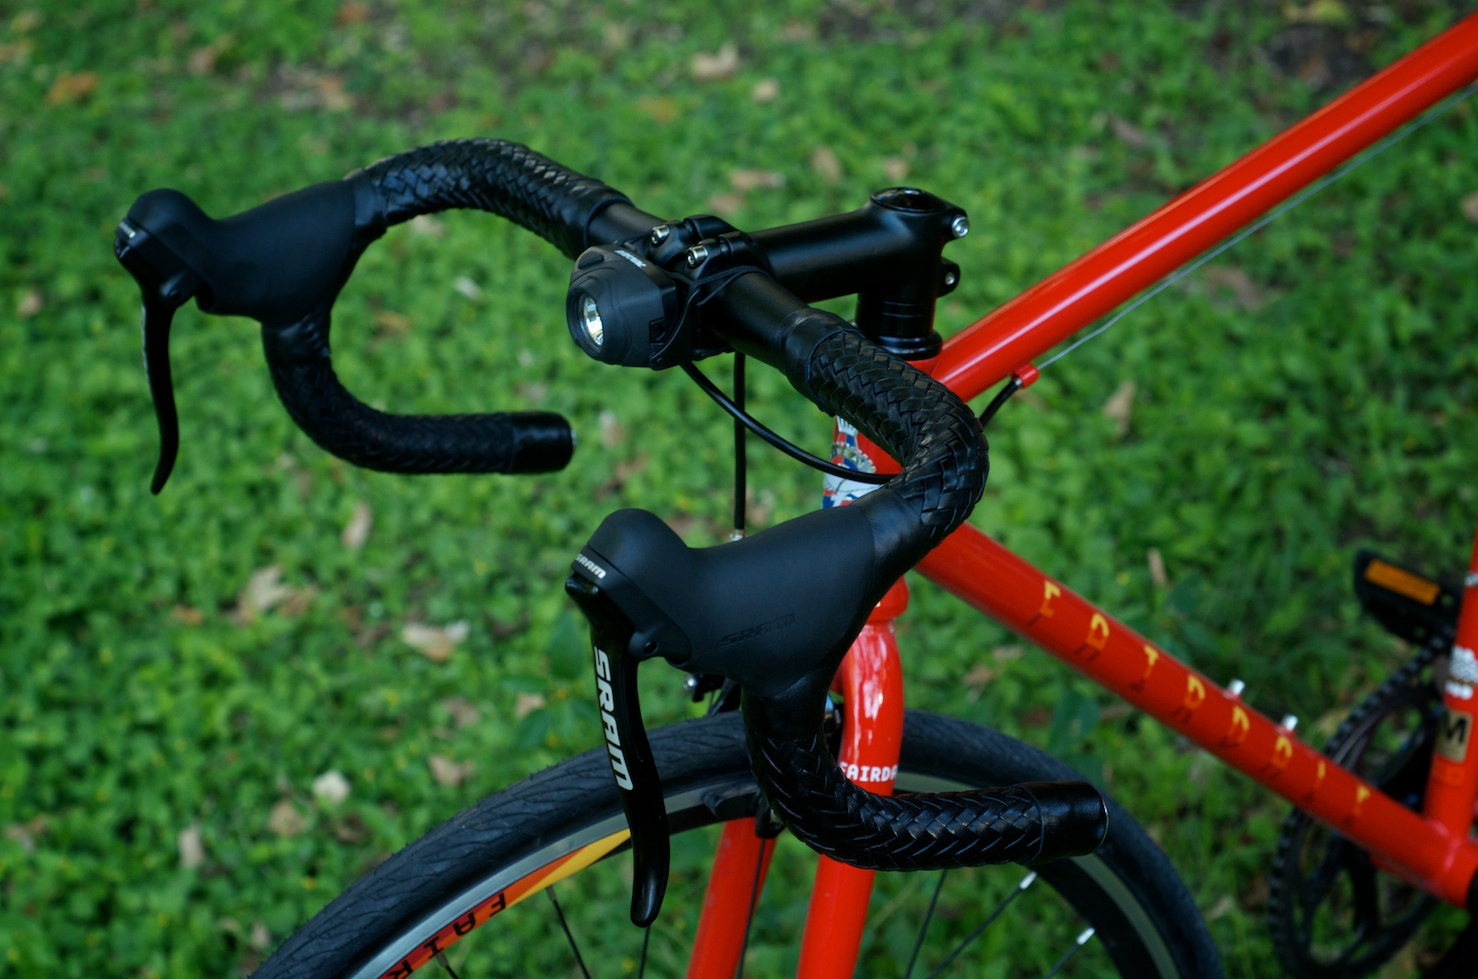 Leh-Seats-leather-custom-bikes-bikeporn-fairdale-parser-express-fixie-singlespeed-trackbike-cycling-braided-barwrap-handlebar-wrap-brooks 1.jpg